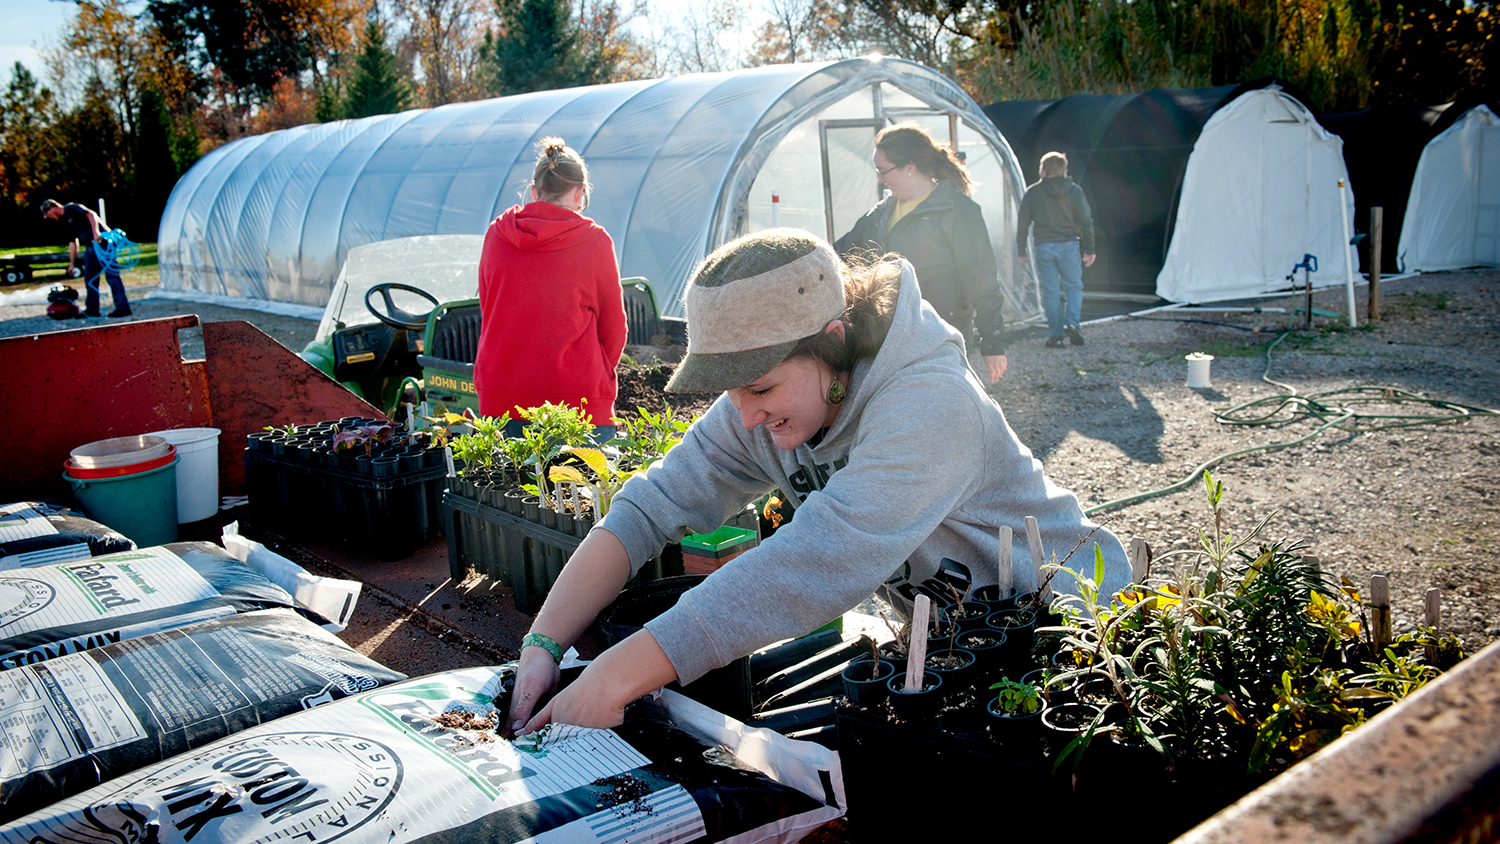 Students gain hands-on experience at the J.C. Raulston Arboretum.